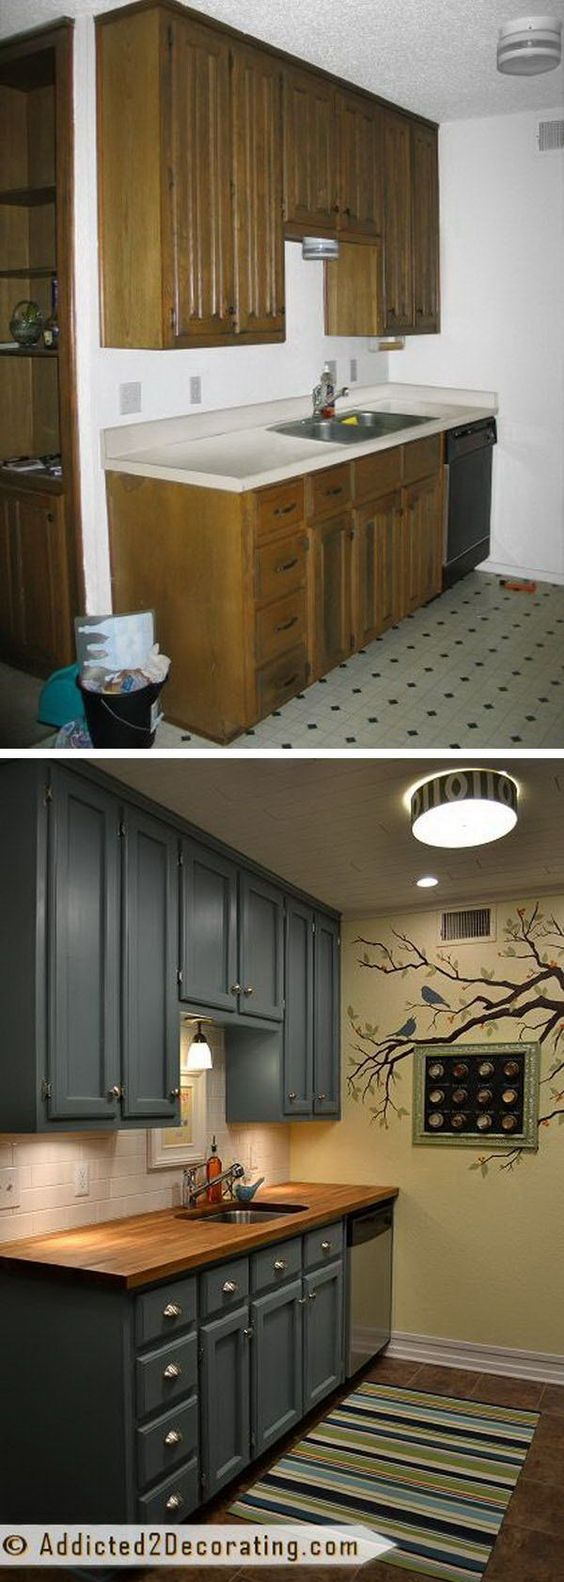 Before and After: 25+ Budget Friendly Kitchen Makeover Ideas | Kitchens House and Budgeting & Before and After: 25+ Budget Friendly Kitchen Makeover Ideas ... kurilladesign.com